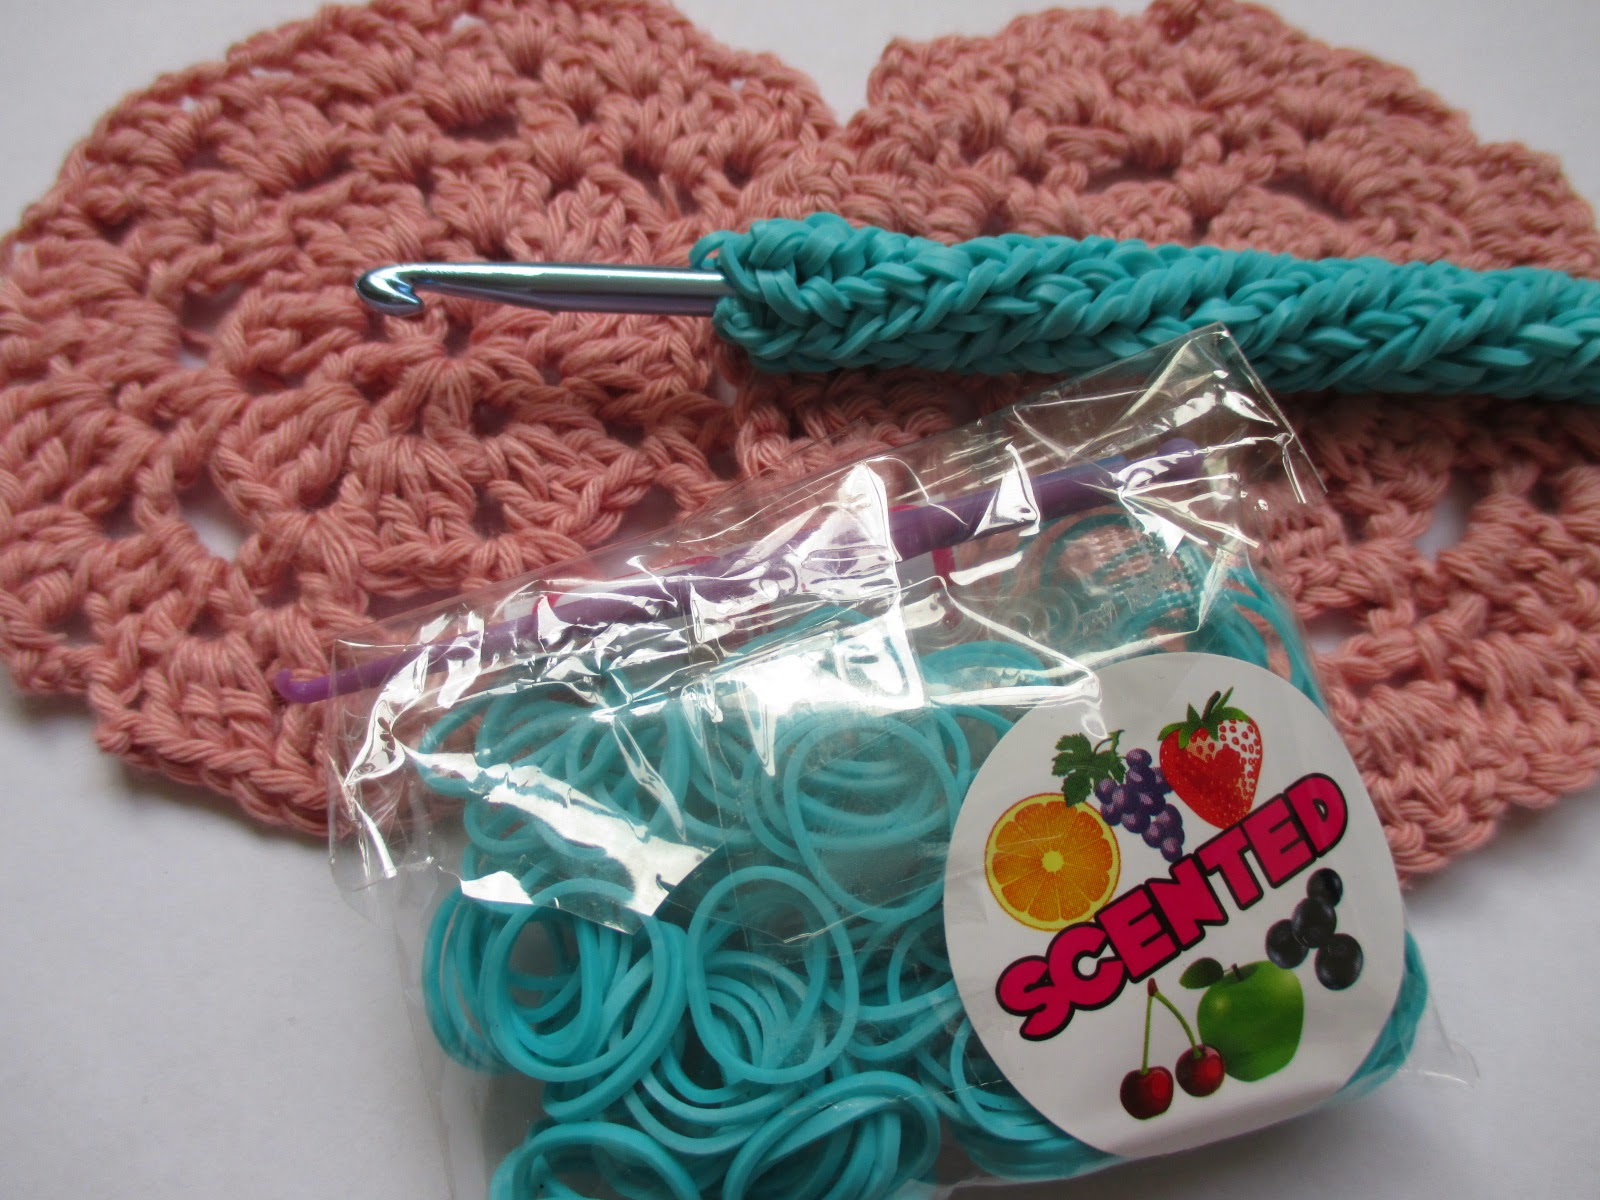 Crocheting Loom : For the Love of Crochet Along: Crochet meets Loom Bands